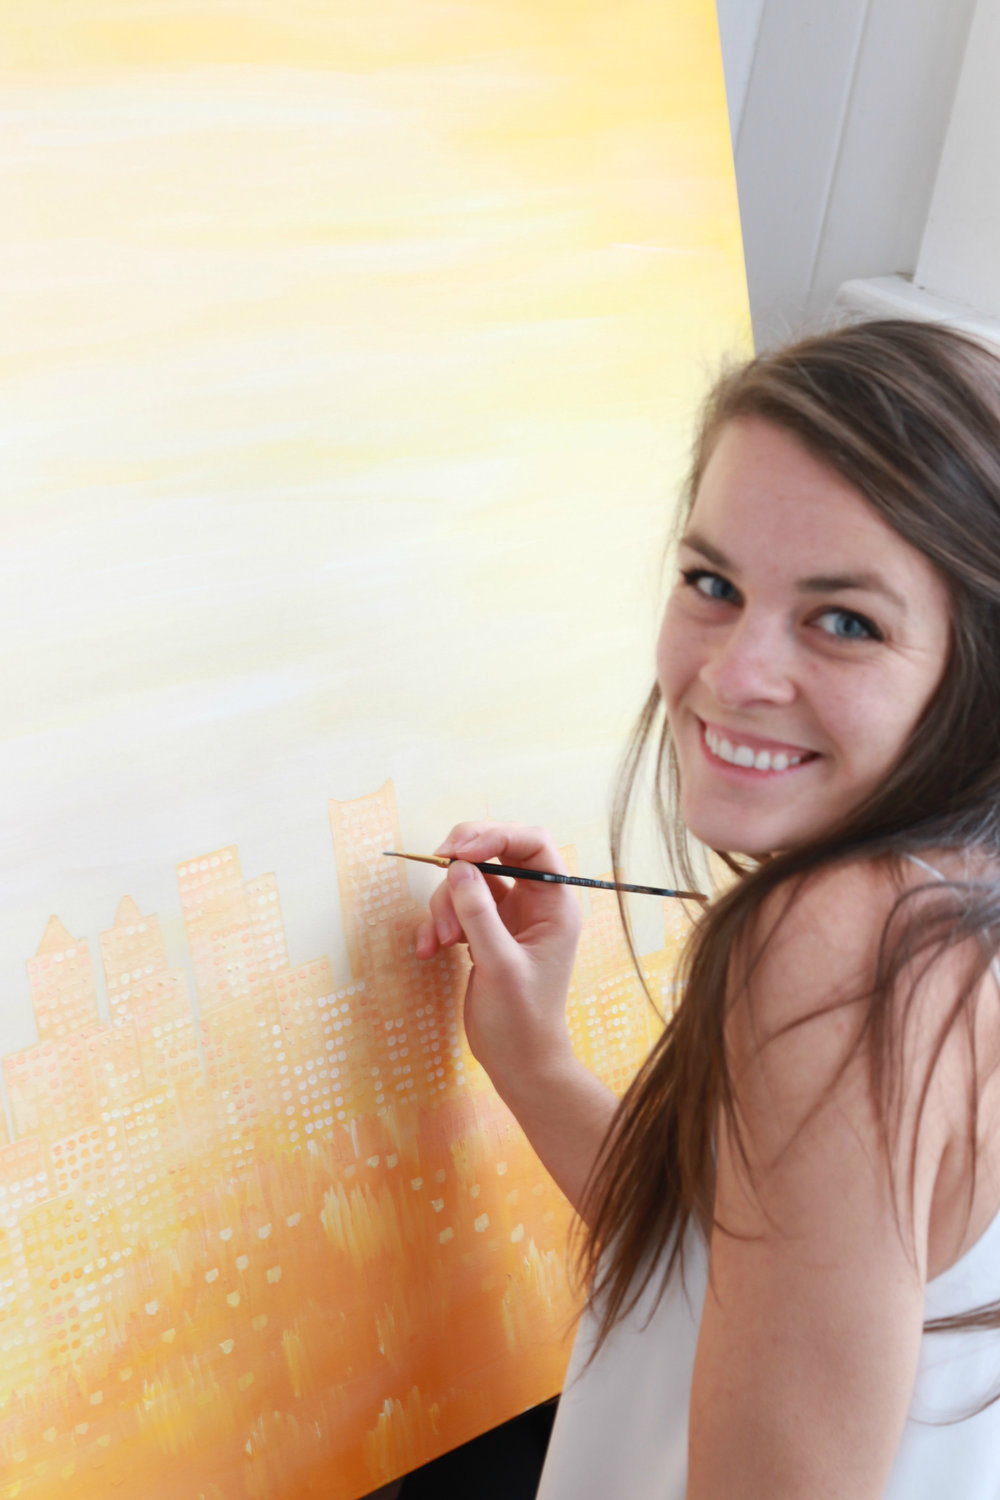 One of my goals for the most recent photo shoot was to get some behind-the-scene shots of me completing a painting. It might be hard to tell in this photo, but this painting is of the Calgary skyline.